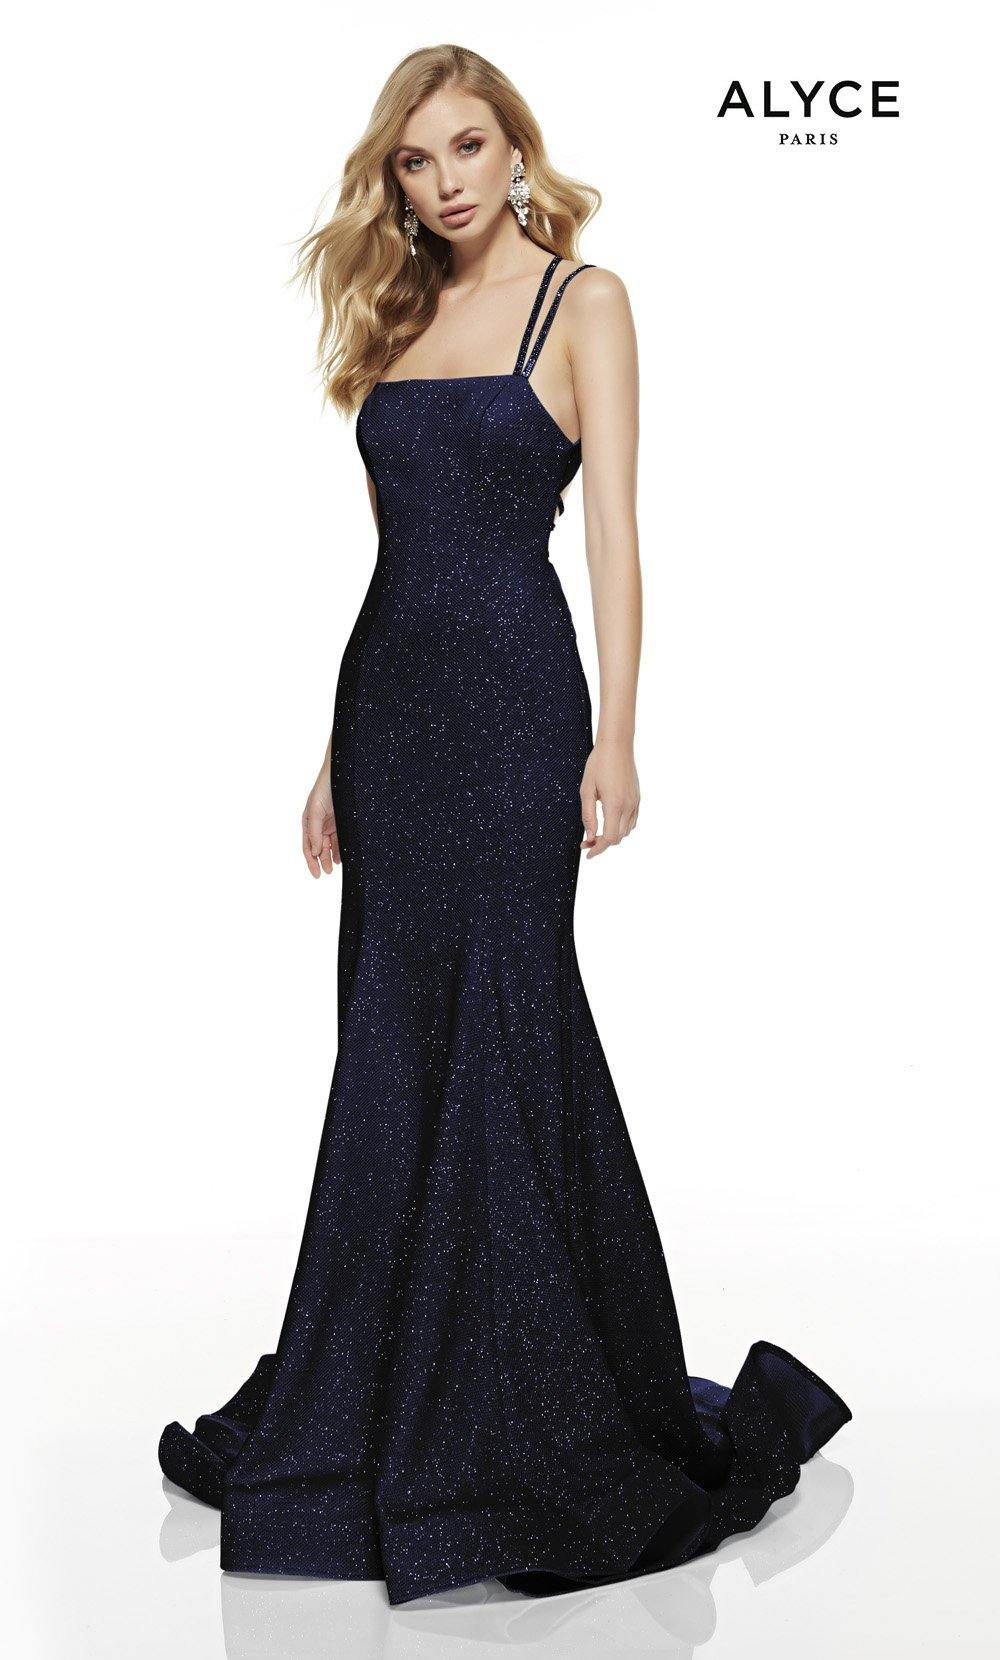 Midnight Blue mermaid style prom dress with a squared neckline and a sweep train